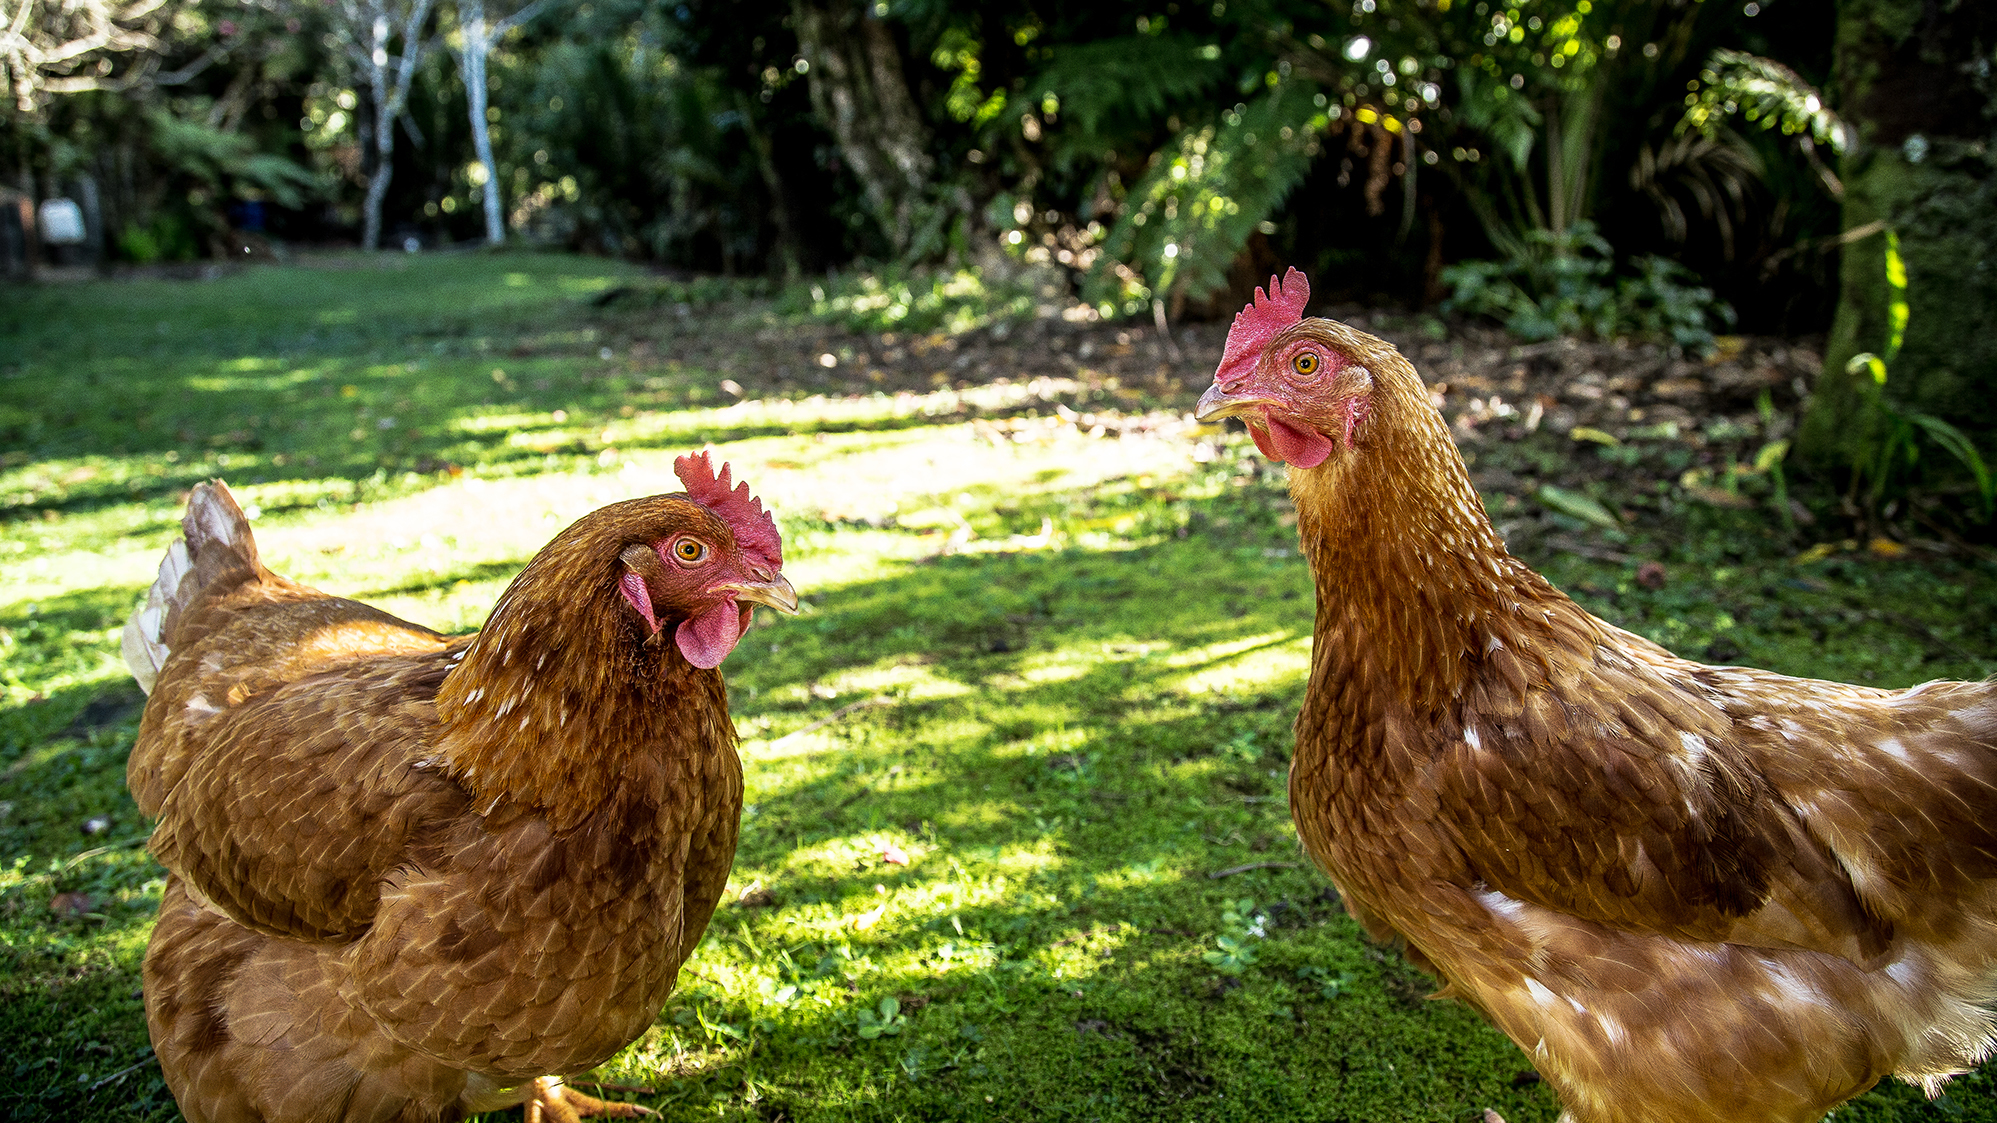 Do Backyard Chickens Need More Rules? | KPBS